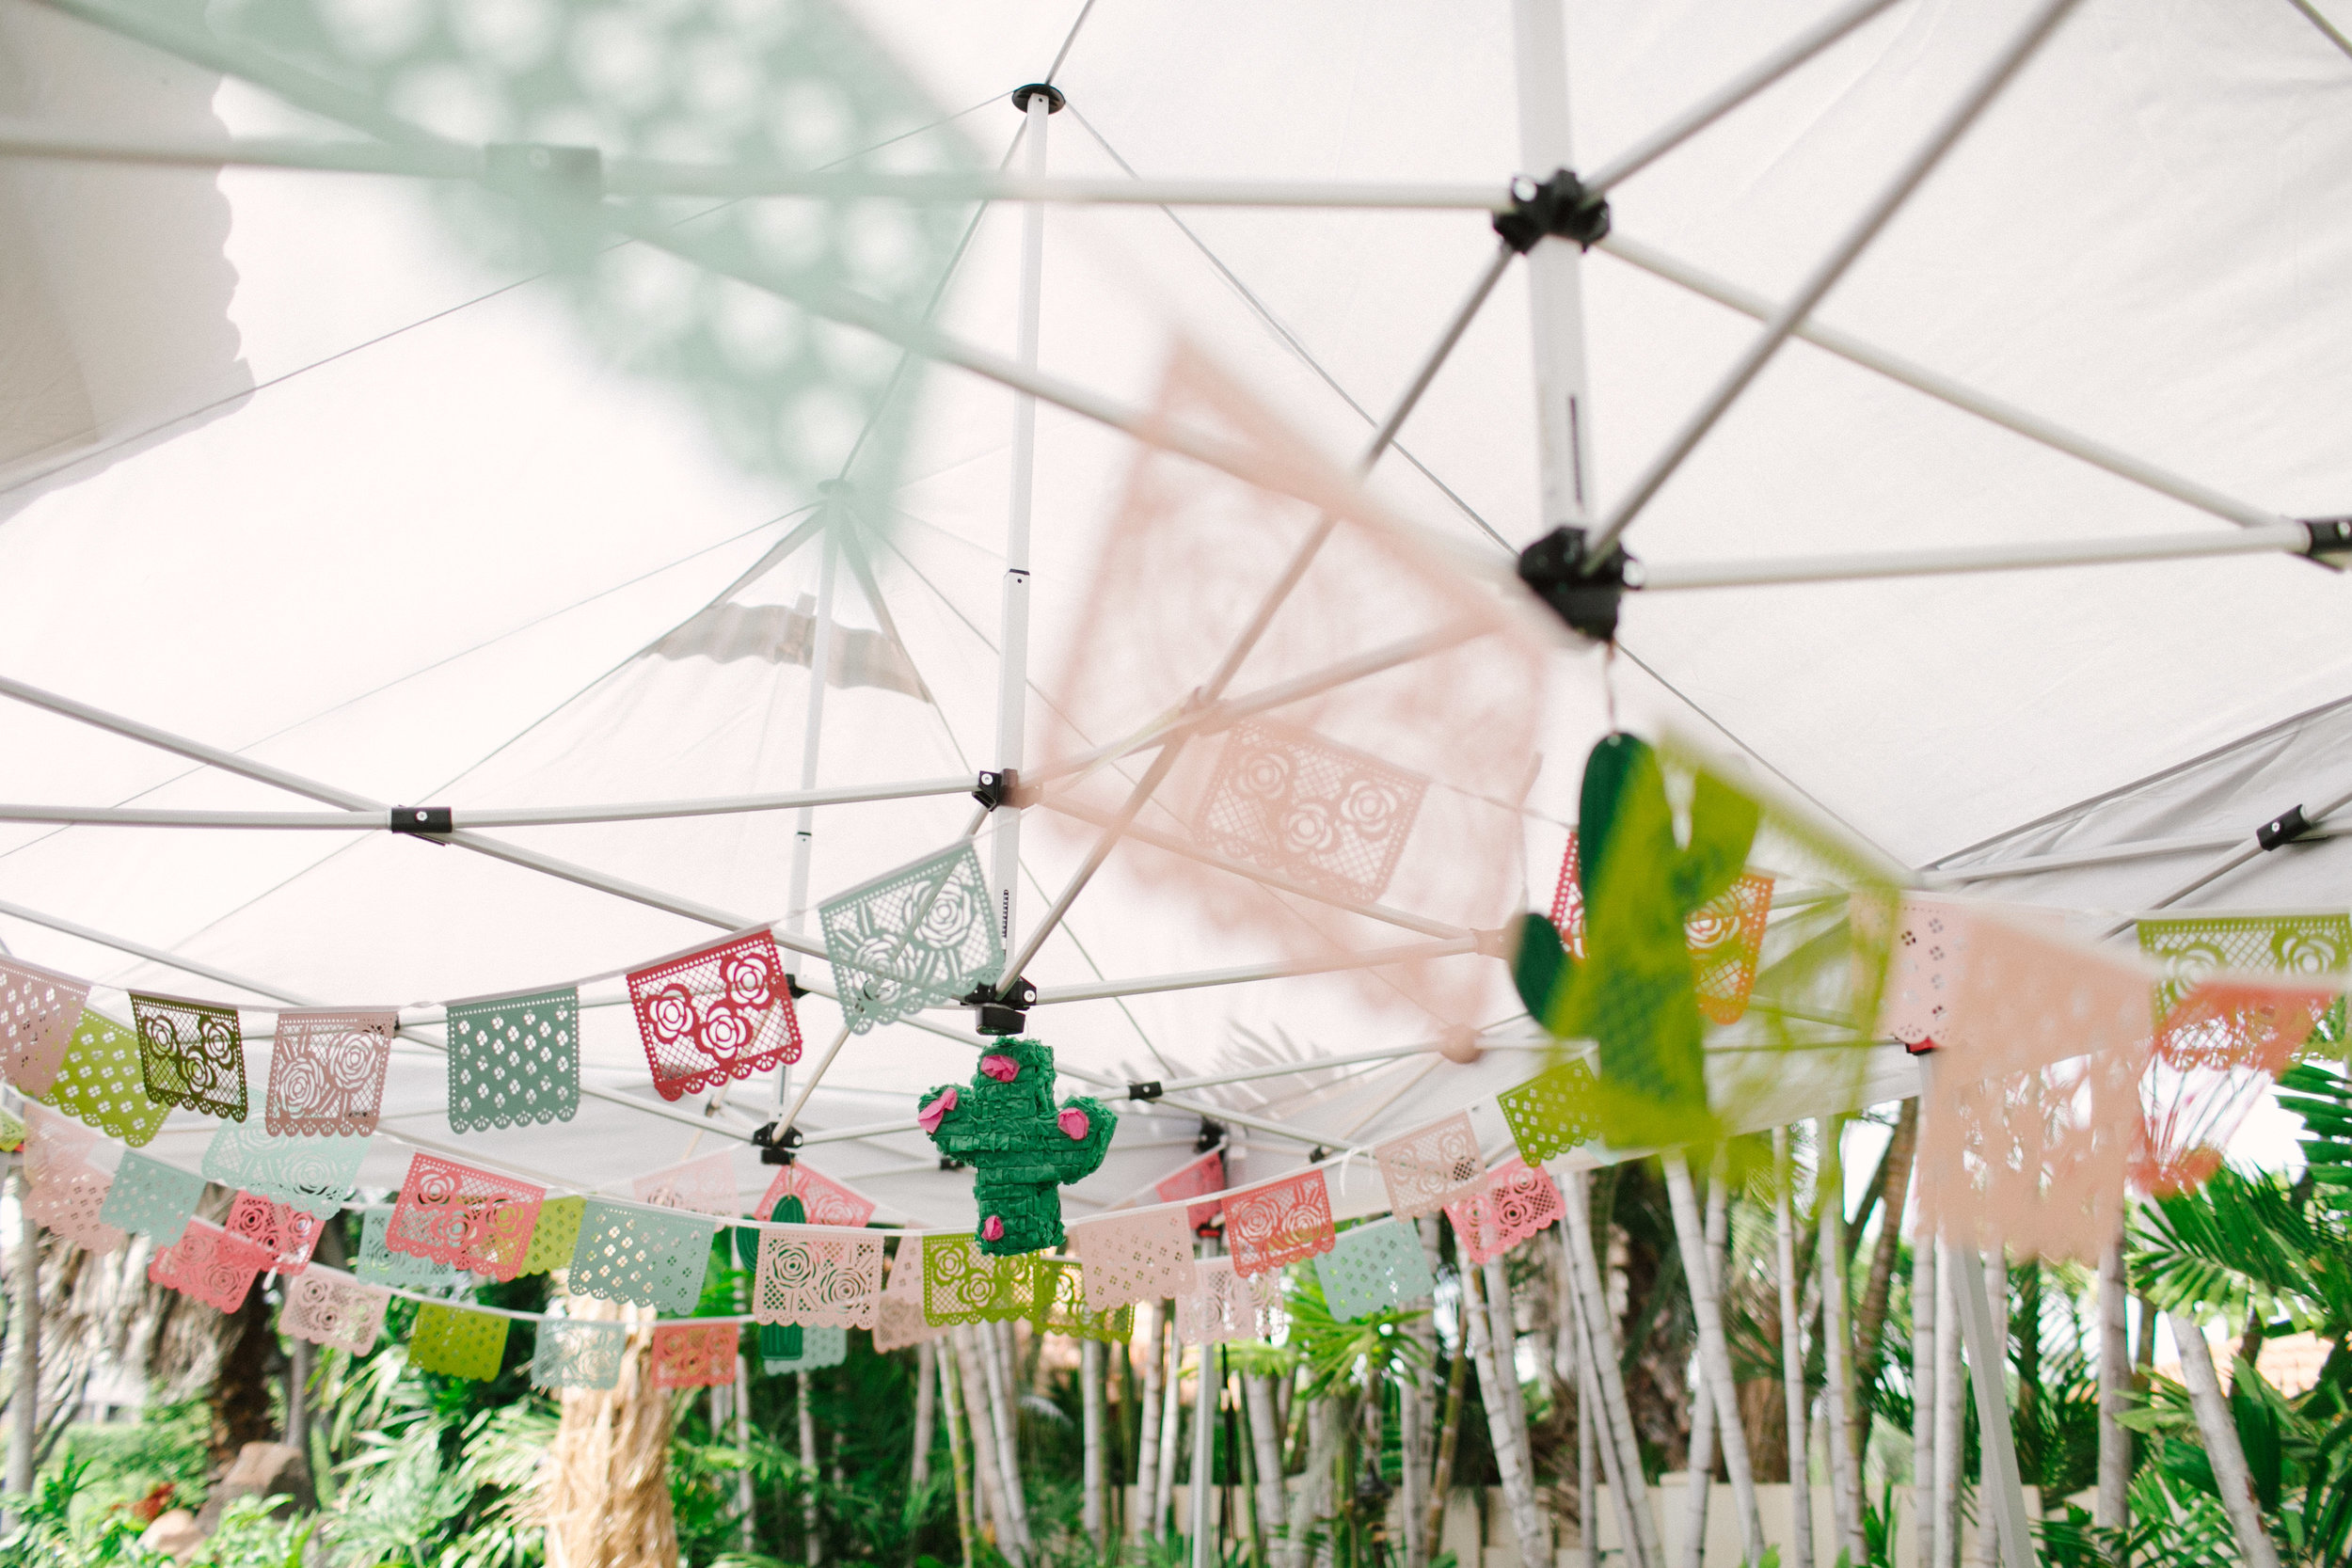 Bridal Fiesta Flags - www.stampdwithaloha.com